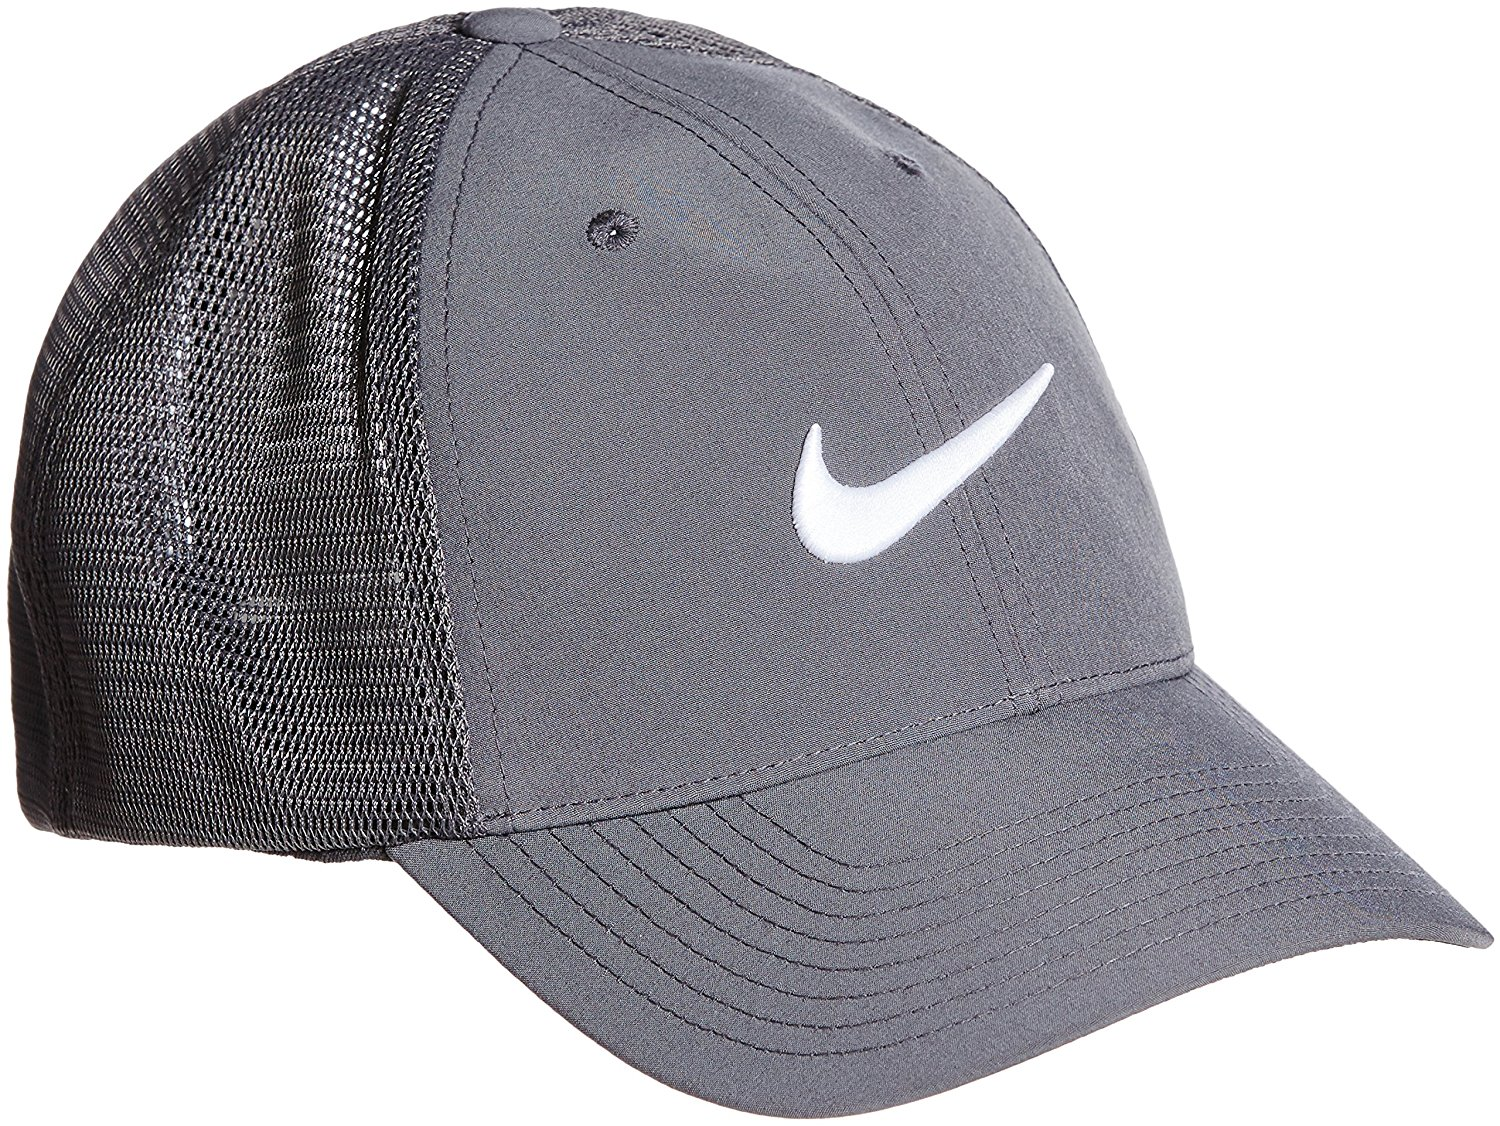 0a20aa85430 Get Quotations · Nike Men s Legacy 91 Tour Mesh Fitted Golf Hat